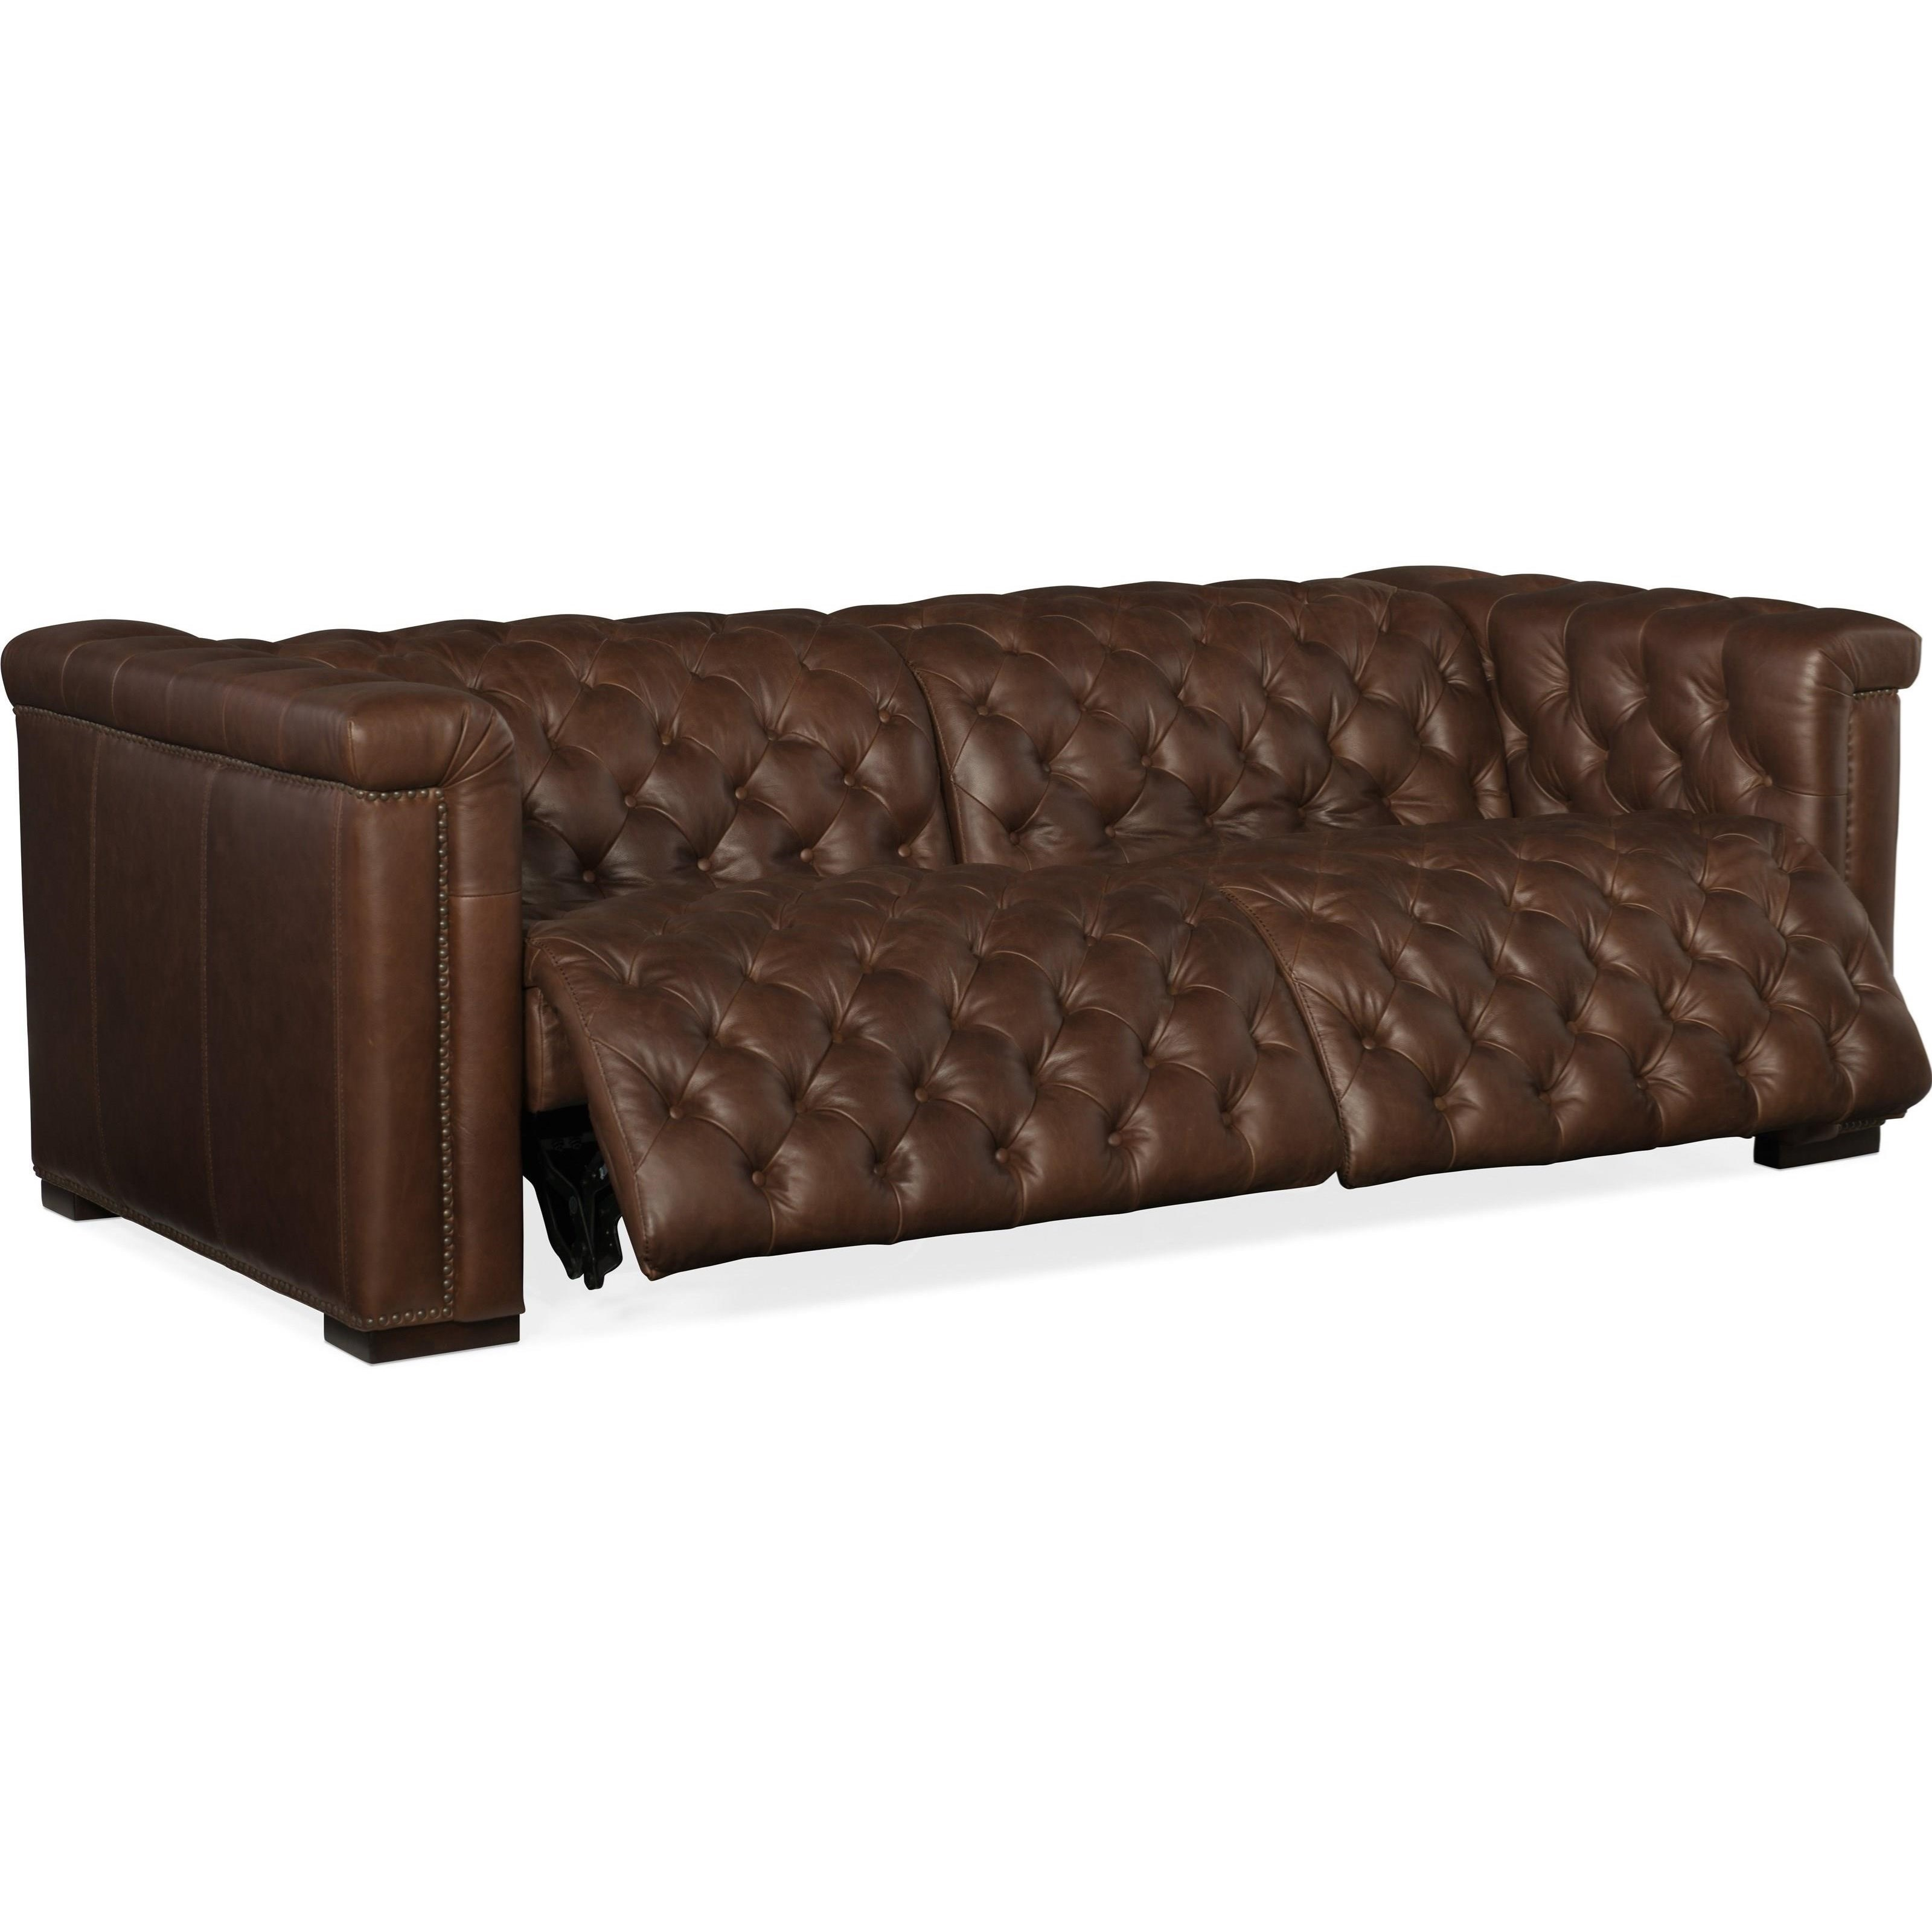 Hooker Furniture Savion Ss434 1 5rl P Ph 089 Power Leather